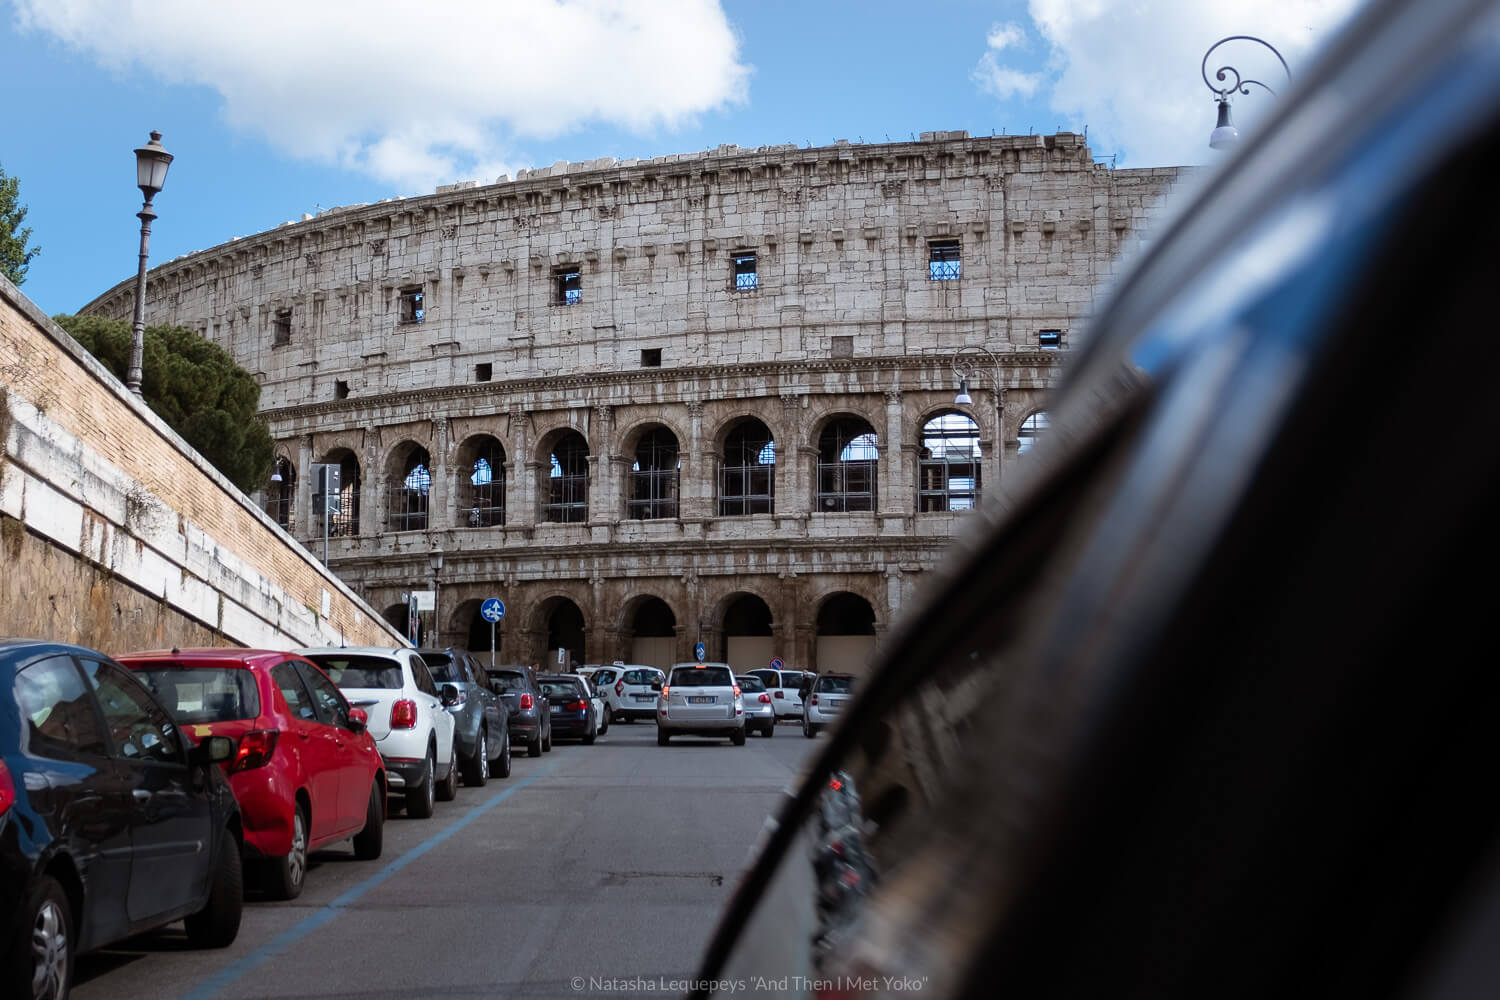 """View of the Colosseum from inside a taxi, Rome. Travel photography and guide by © Natasha Lequepeys for """"And Then I Met Yoko"""". #rome #italy #travelblog #travelphotography"""